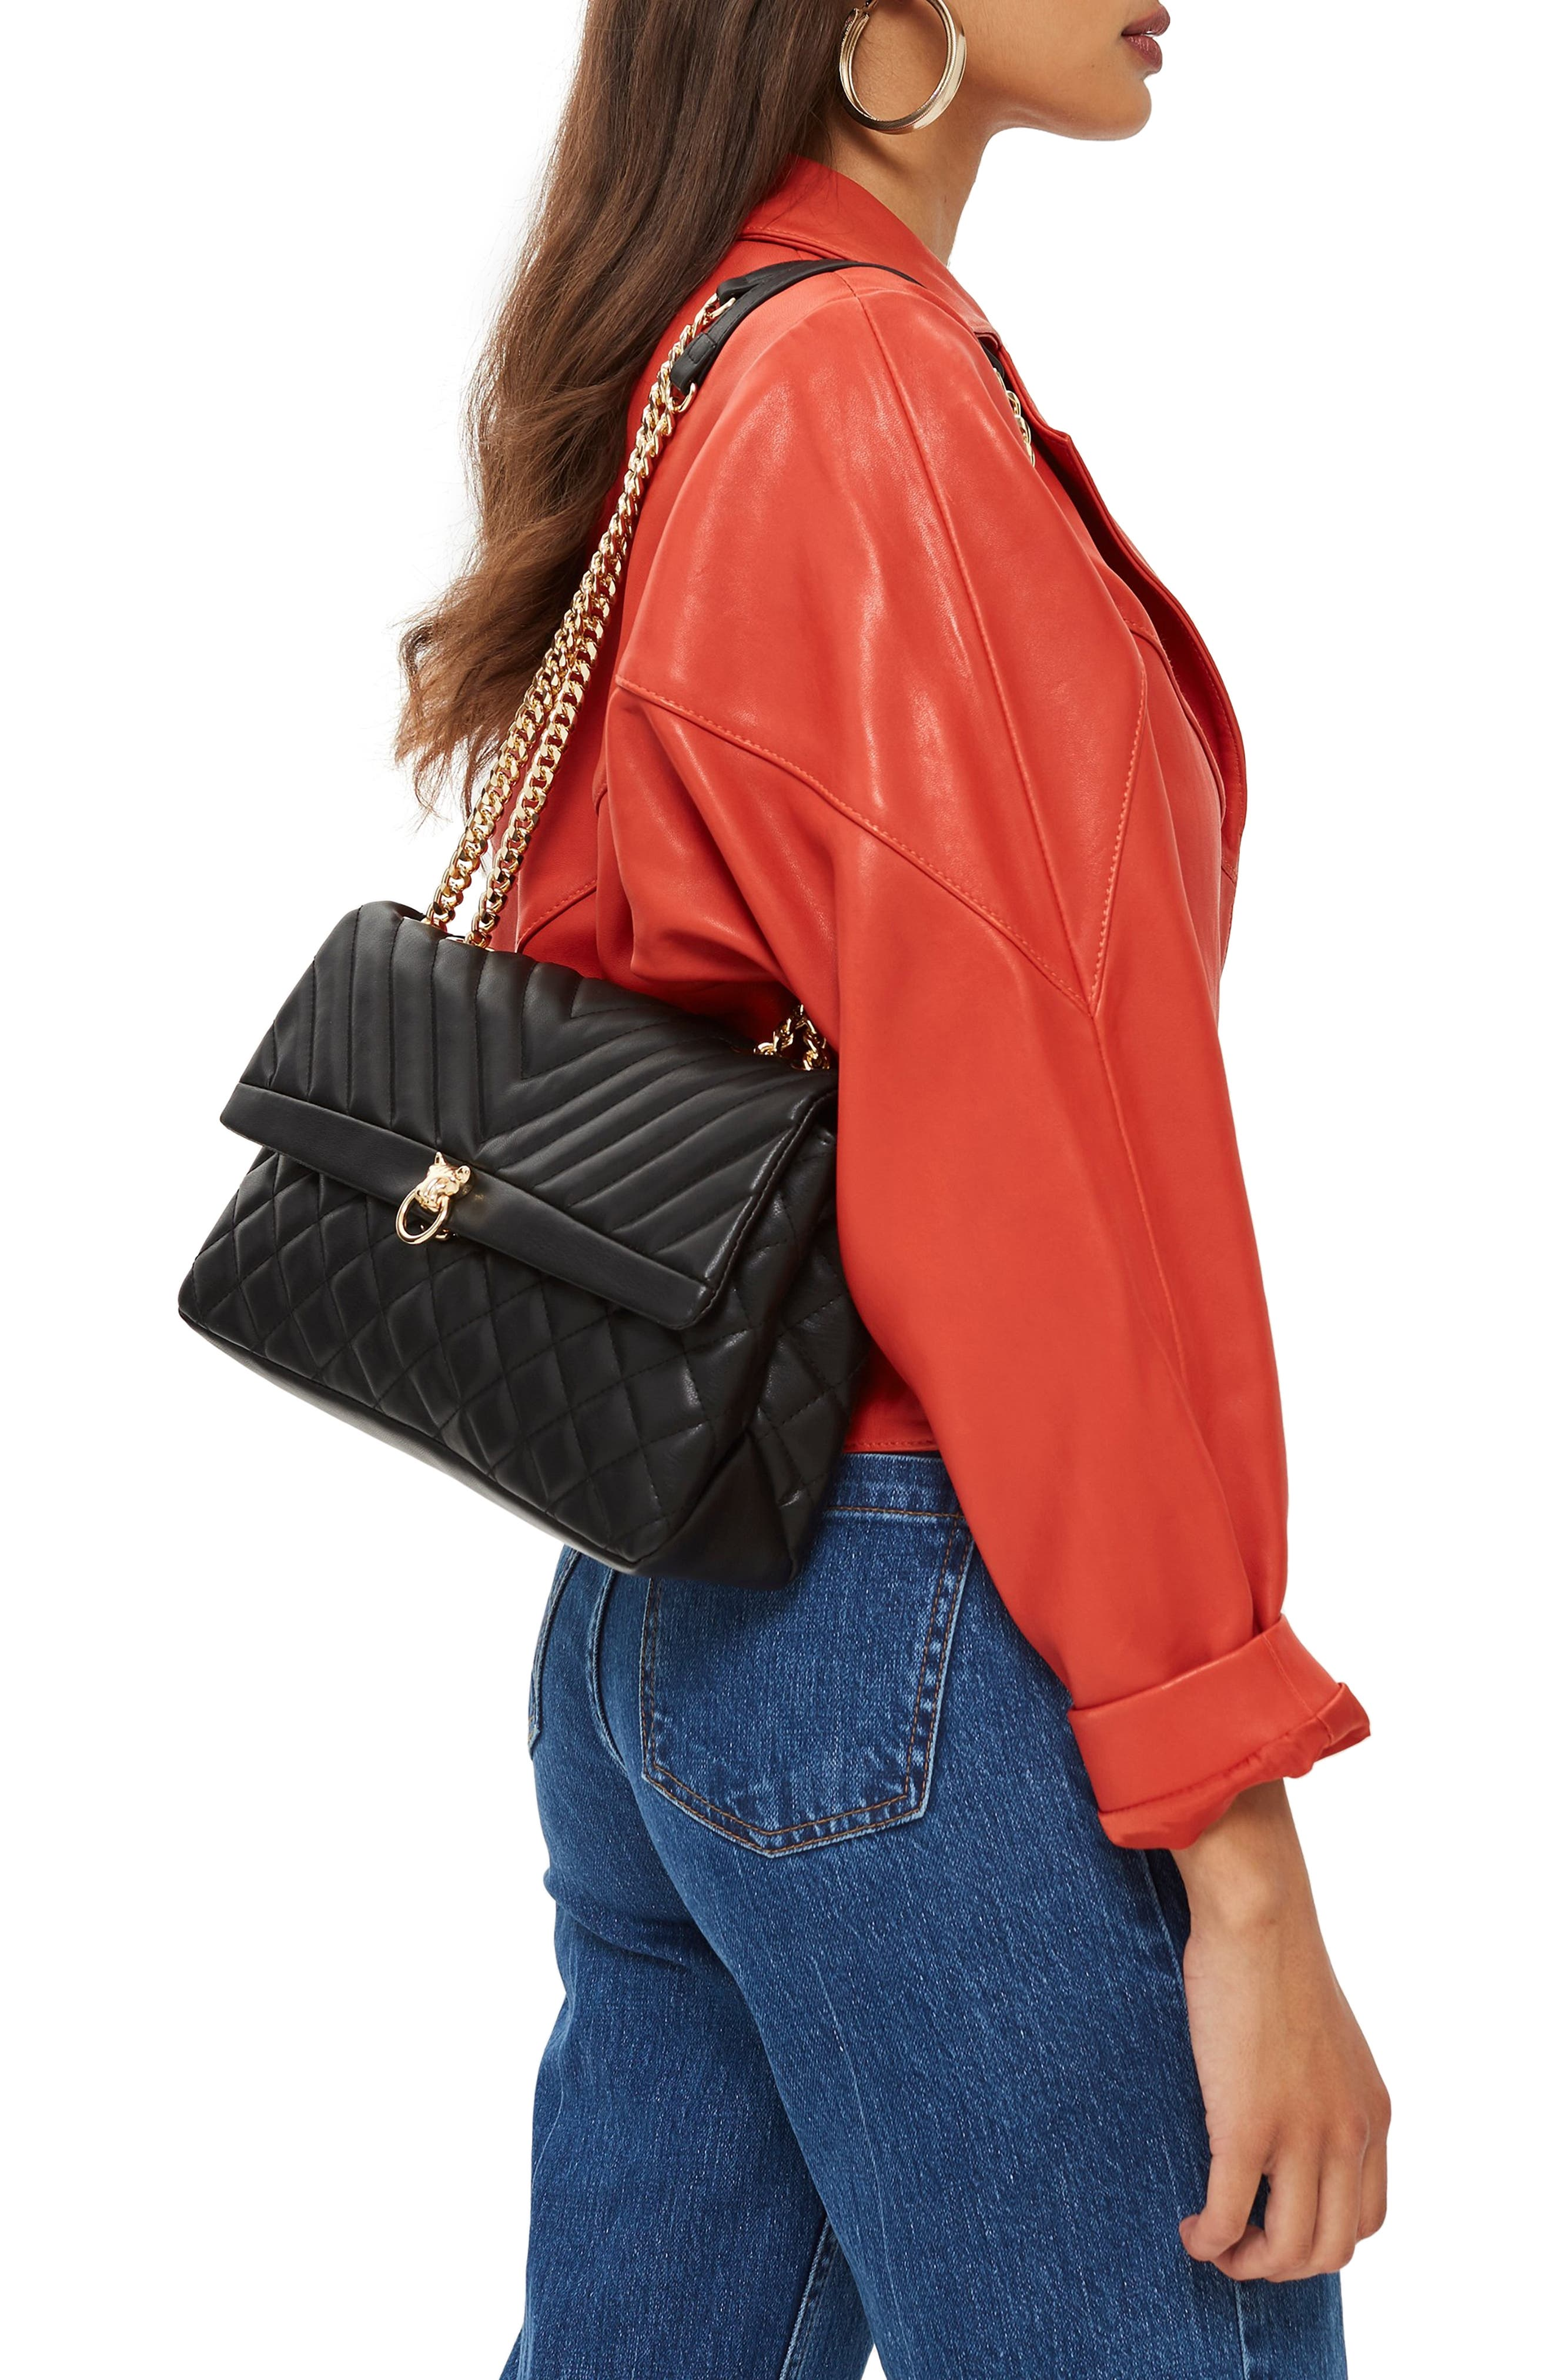 TOPSHOP, Panther Quilted Faux Leather Shoulder Bag, Alternate thumbnail 2, color, 001